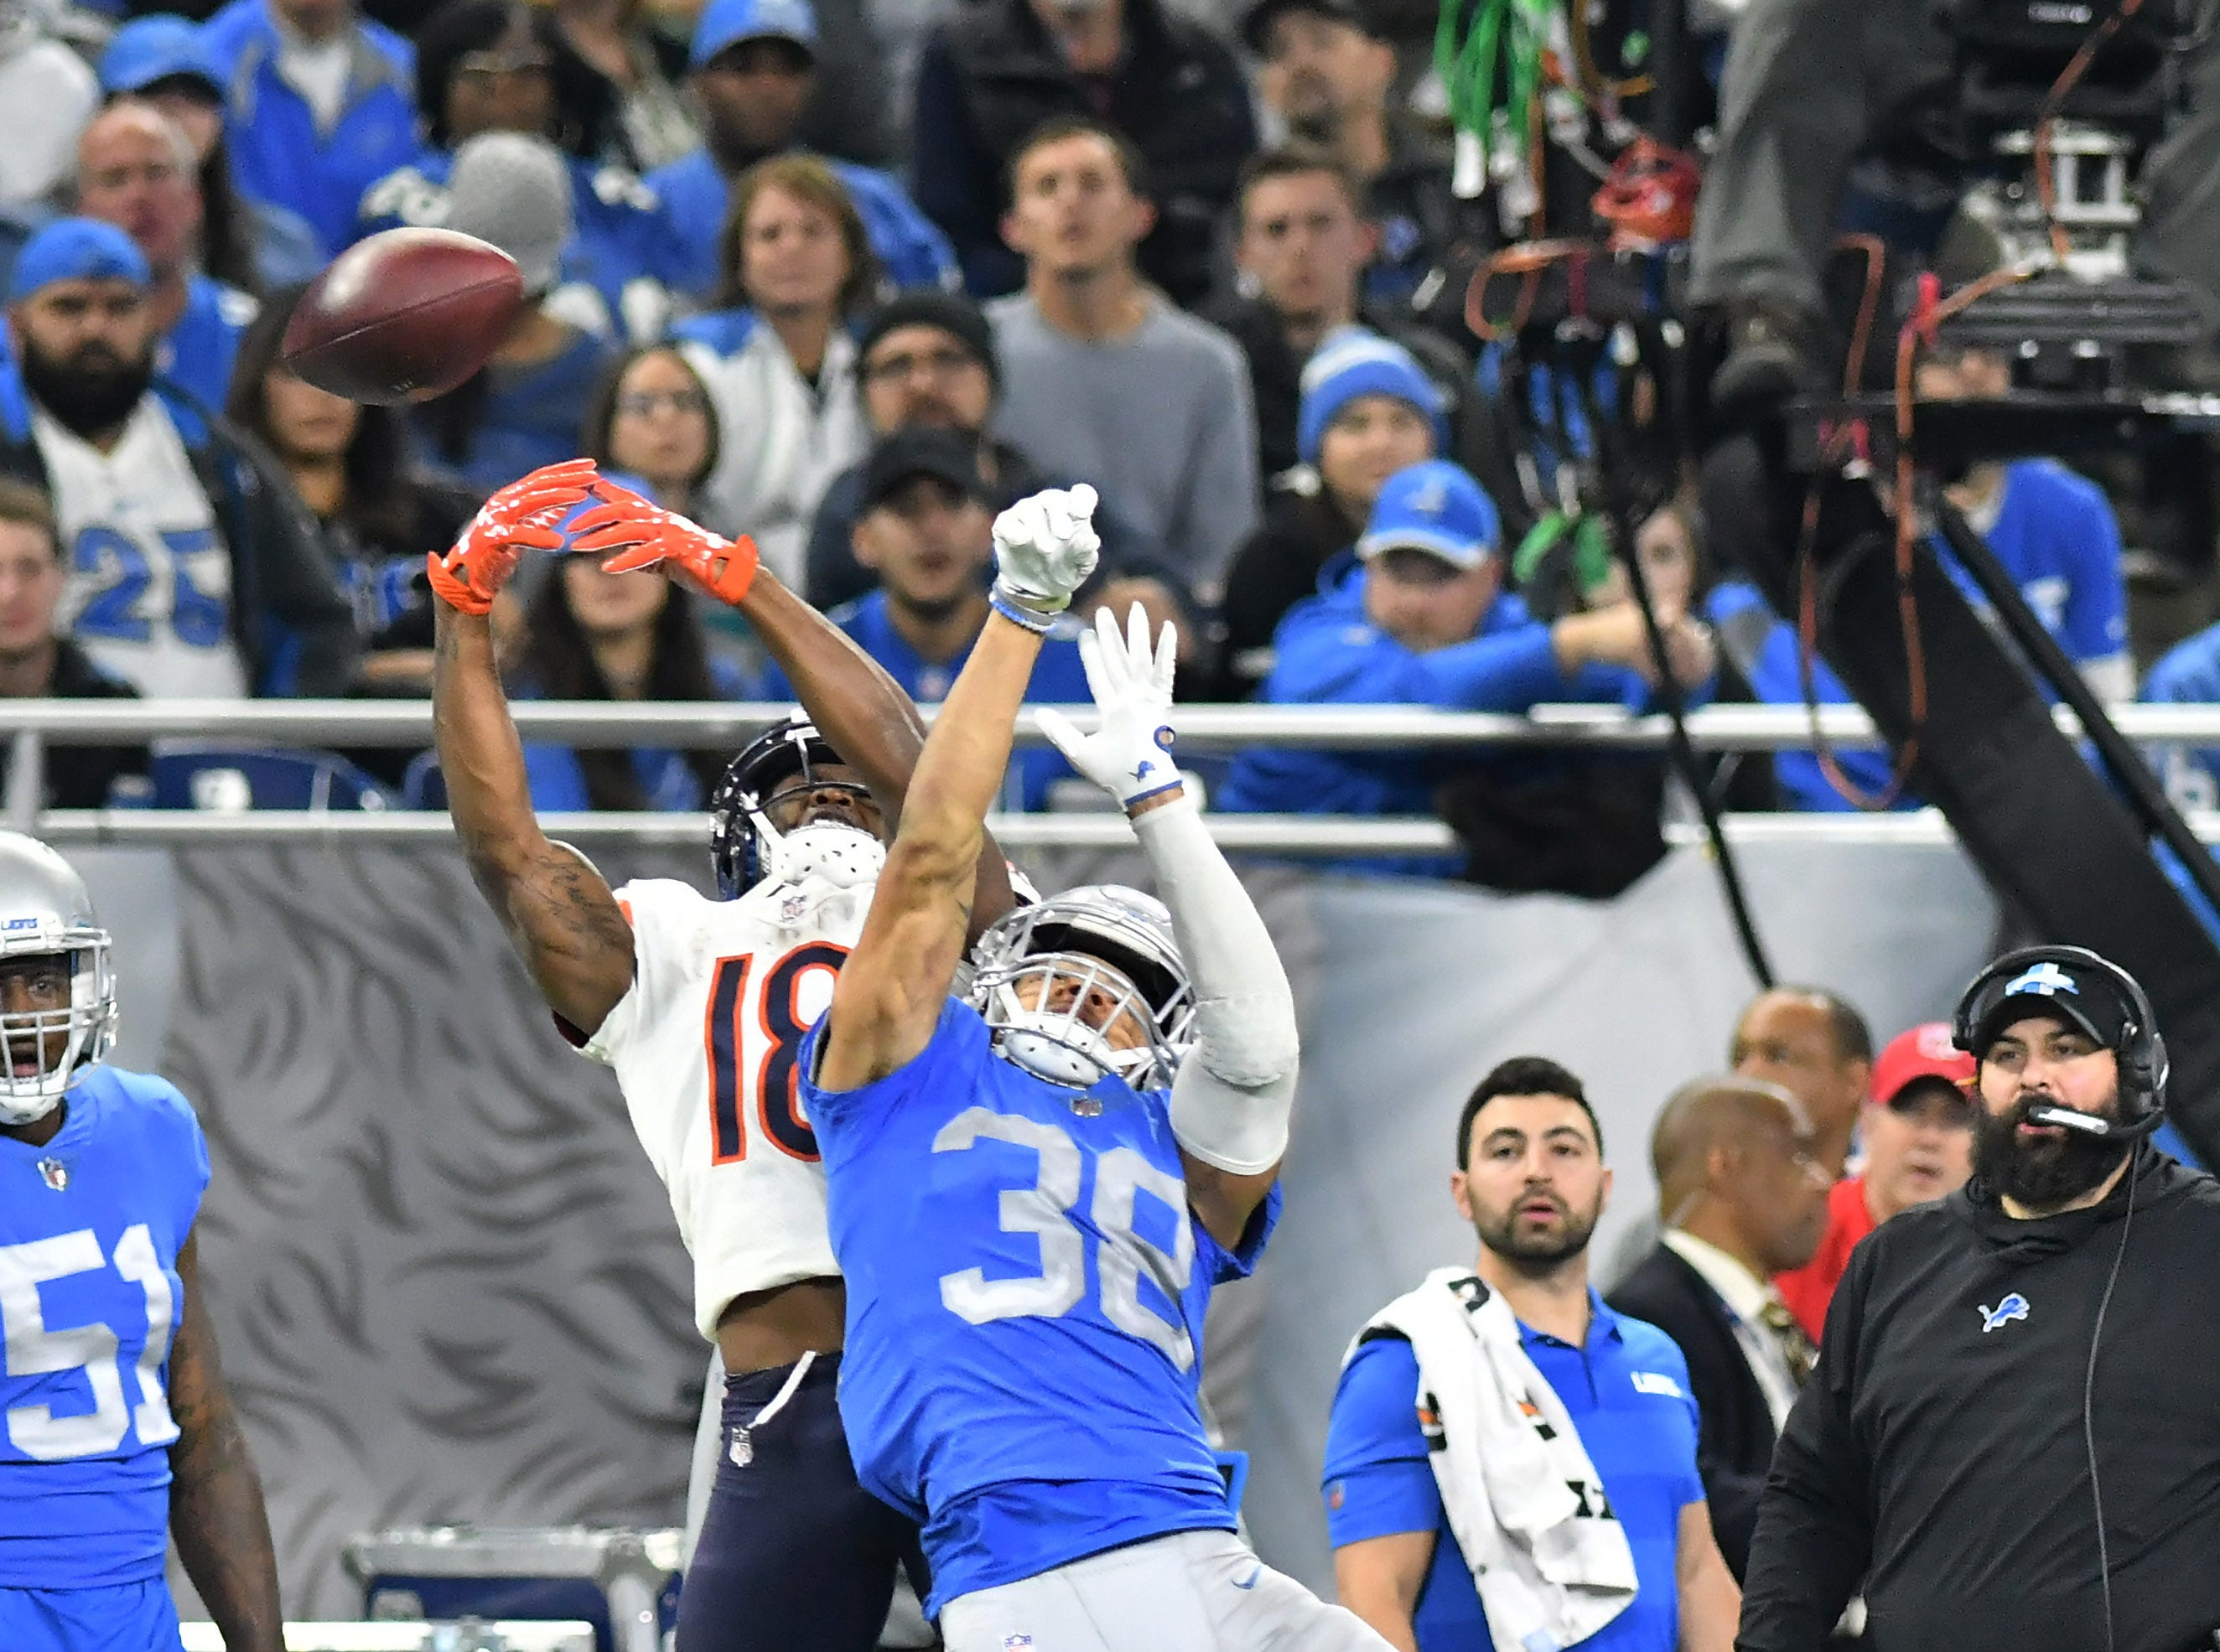 Lions' Mike Ford (38) breaks up a pass intended for Bears' Taylor Gabriel In the fourth quarter.  Detroit Lions vs Chicago Bears on Thanksgiving Day at Ford Field in Detroit on Nov. 22, 2018.  Bears win, 23-16.